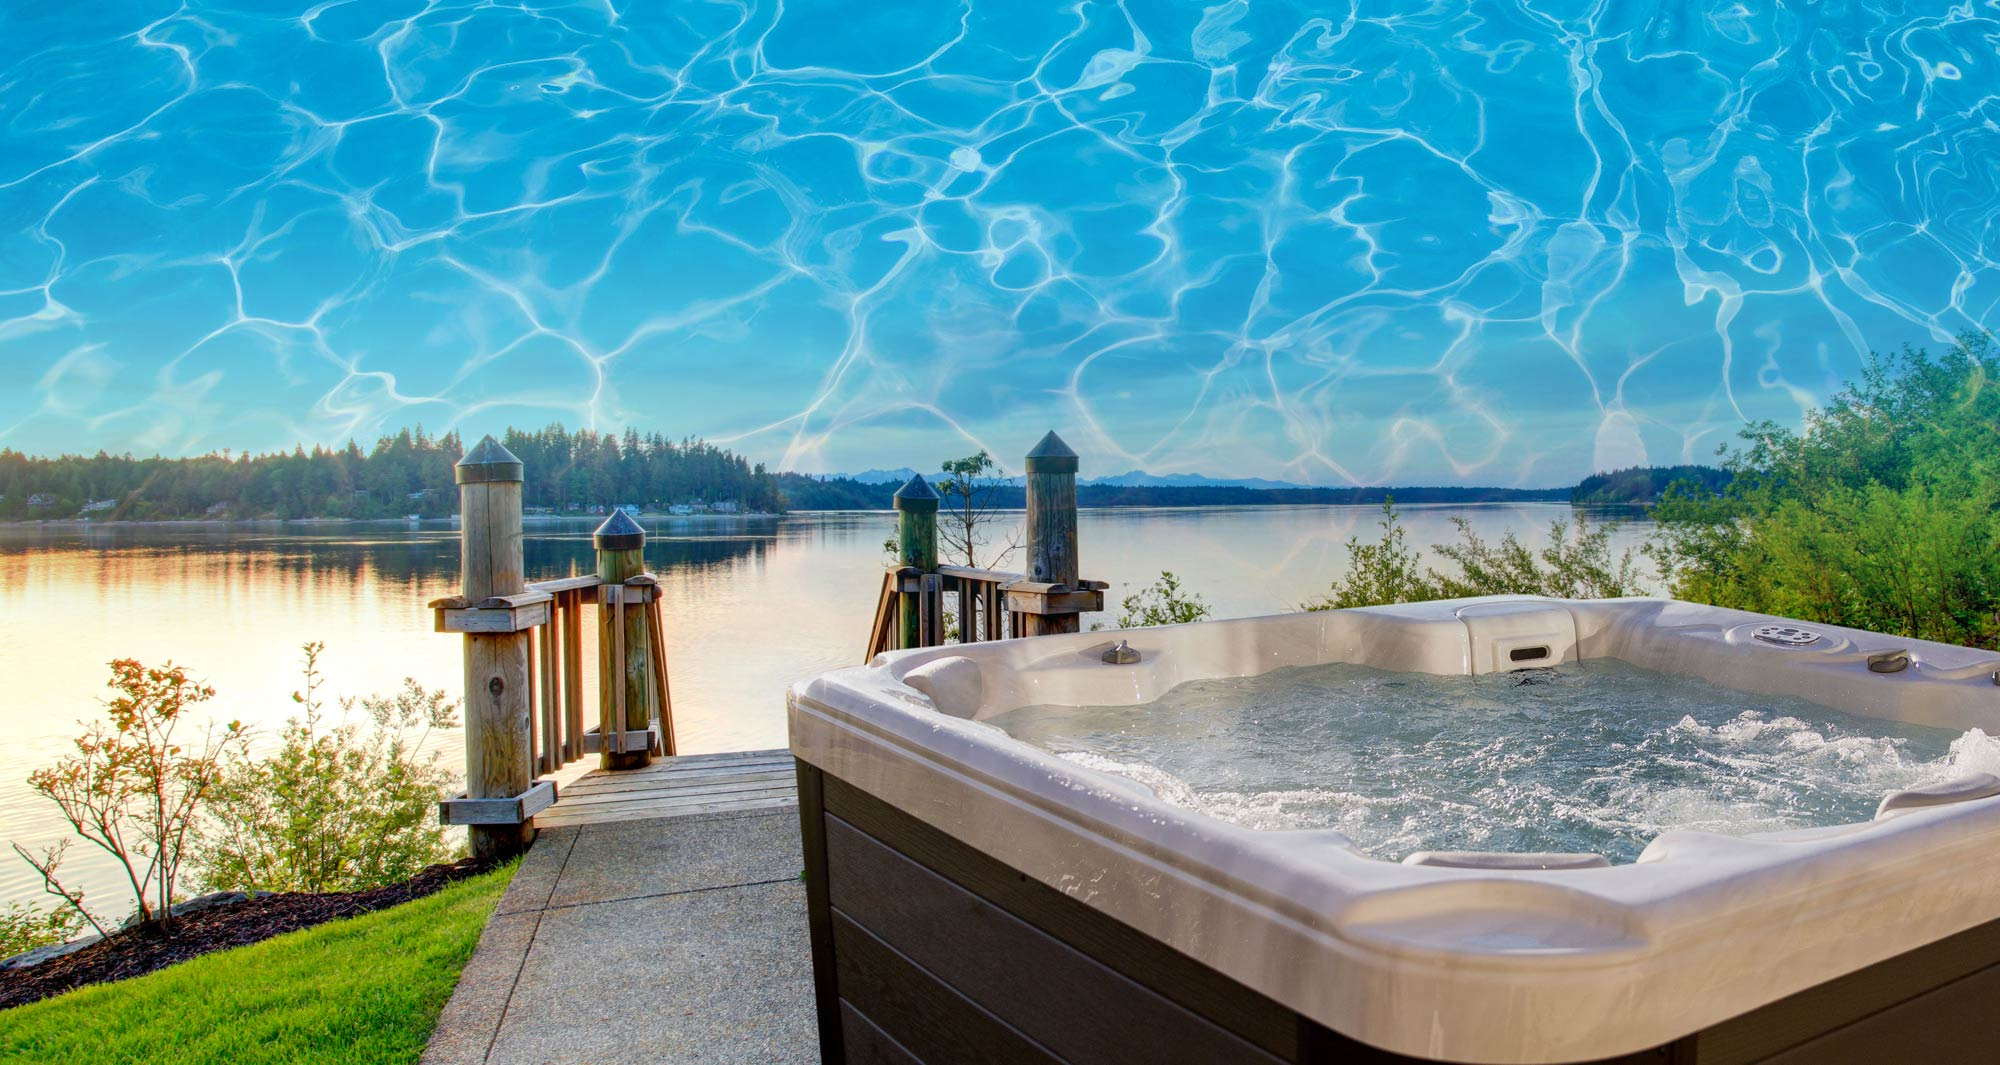 This is a photo of the hot tub overlooking a lake.